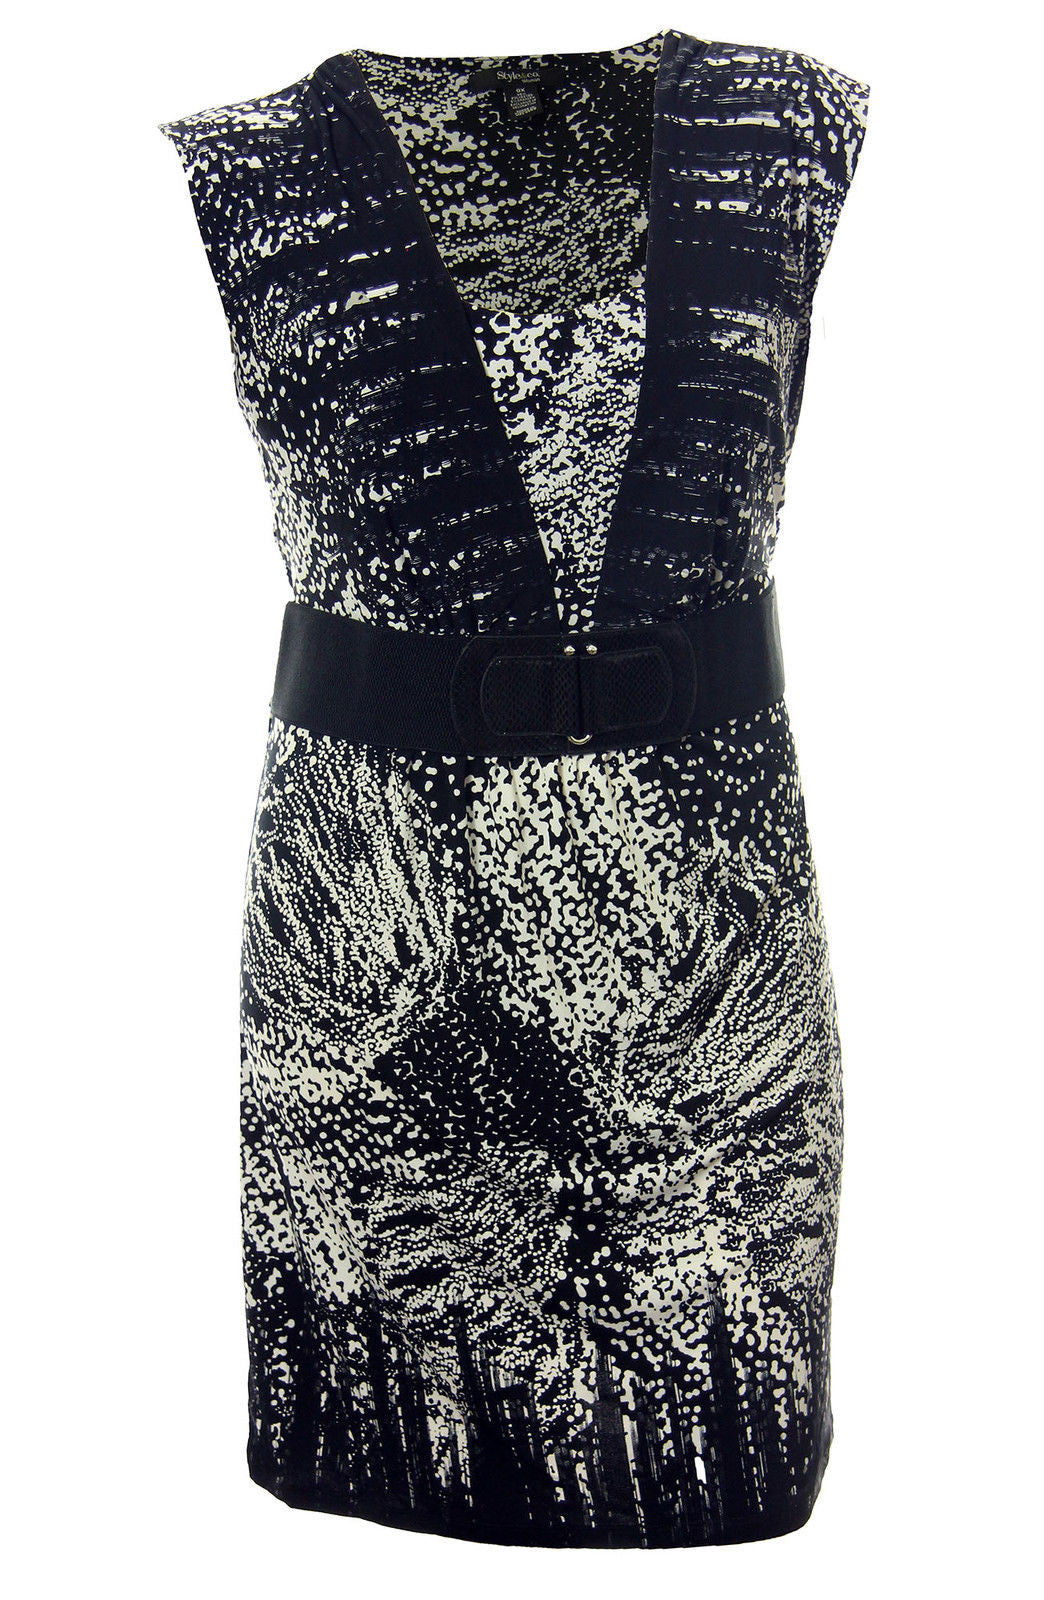 Style & Co Multi Color Abstract Print Sleeveless Faux Belted Dress